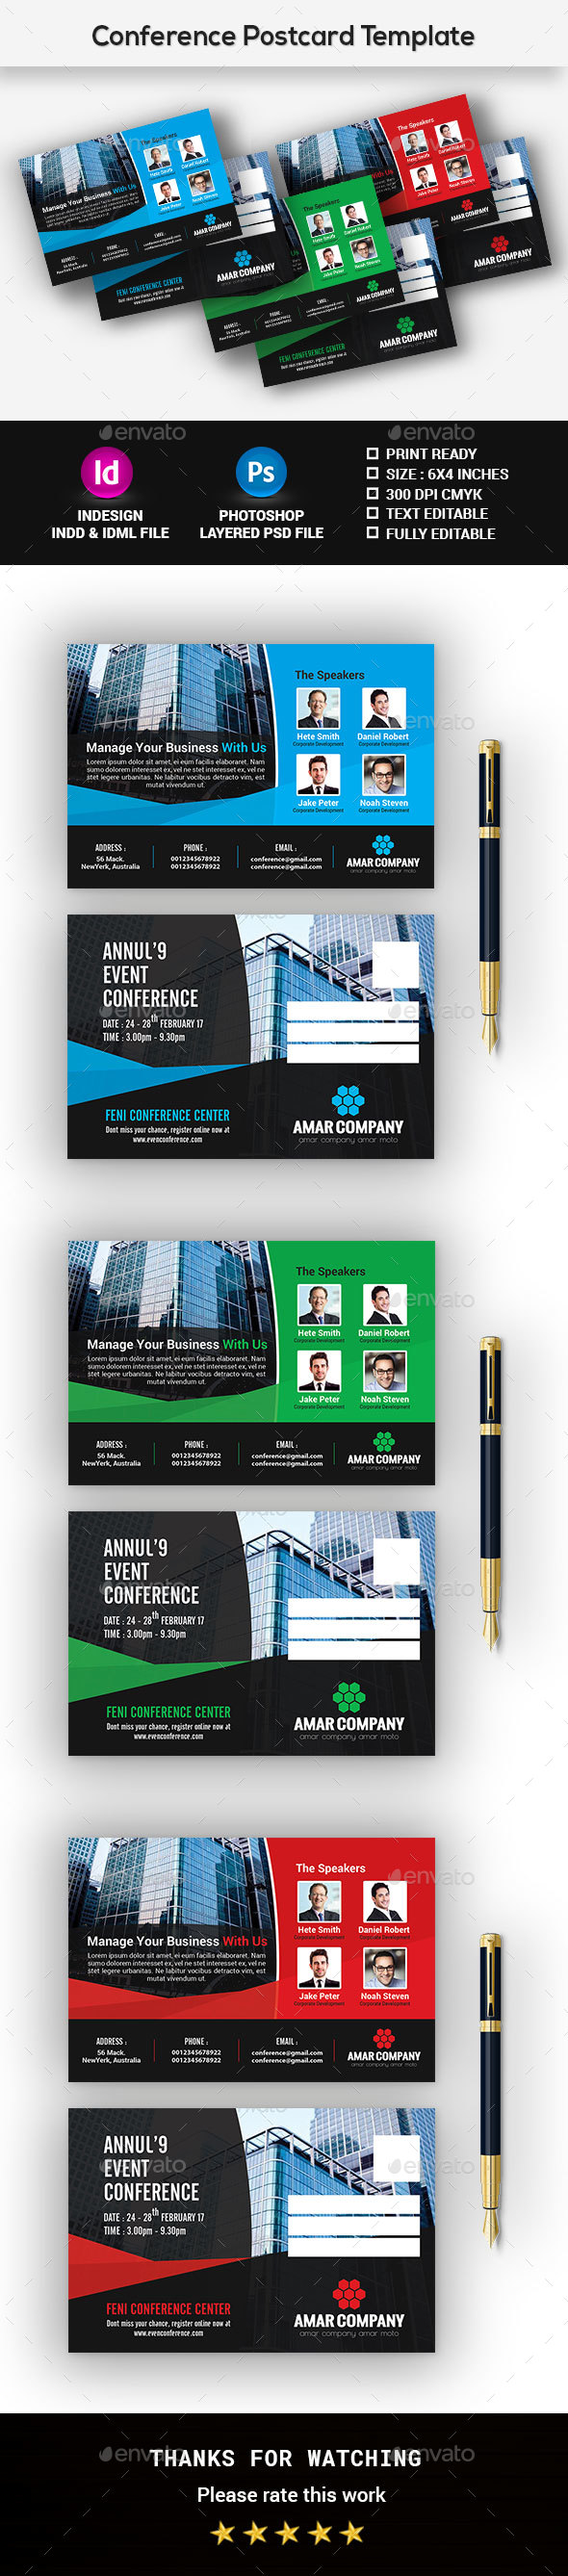 Event Summit Conference Postcard - Cards & Invites Print Templates